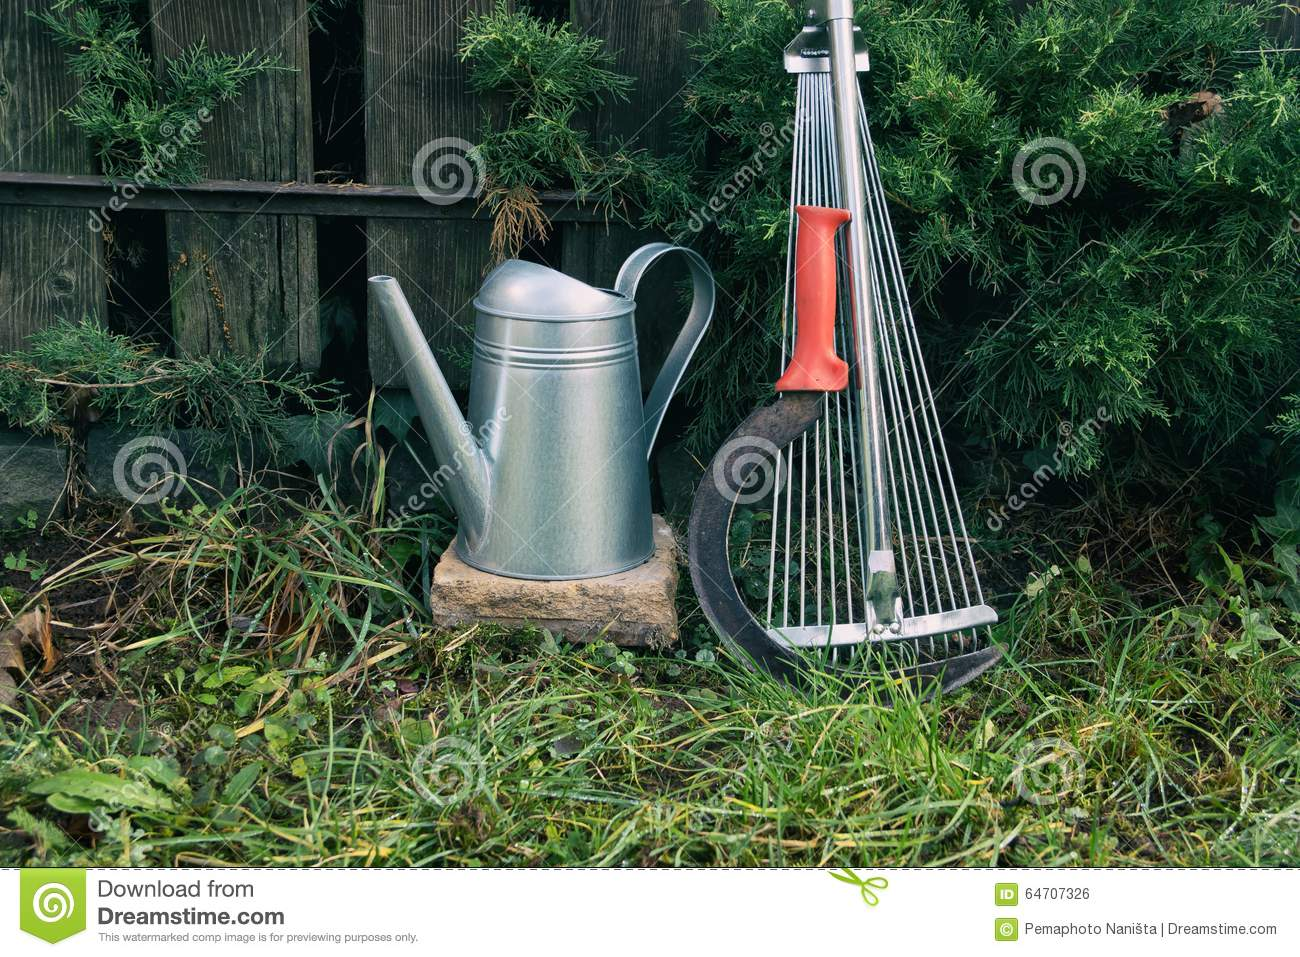 Gardening tools stock photo image 64707326 for Gardening tools watering